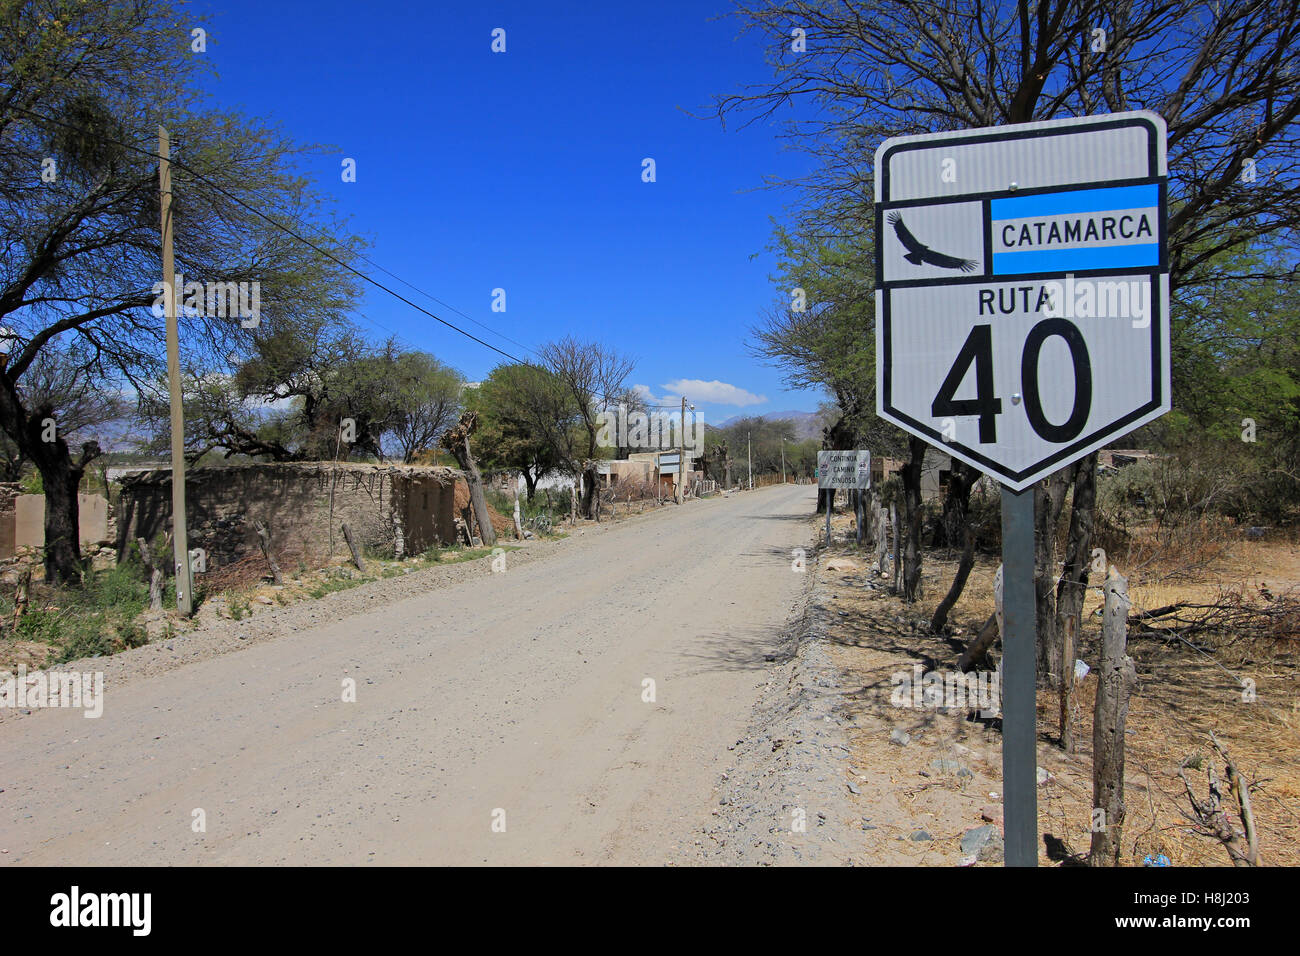 Route 40 with sign, Cafayate, Argentina - Stock Image